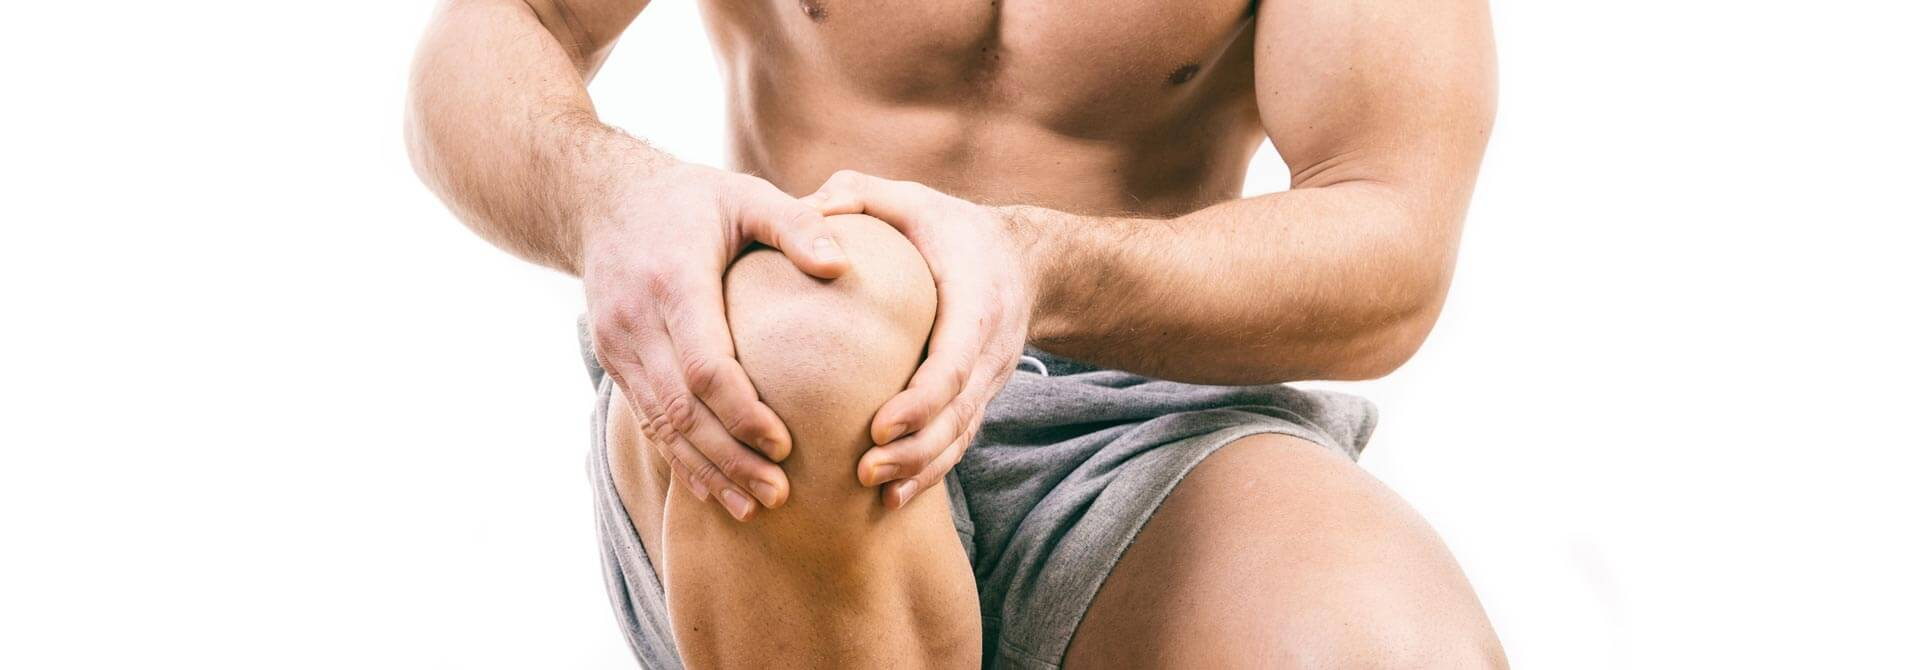 Athlete holds knee in pain because he didn't prehab them with GymnasticBodies progressions.